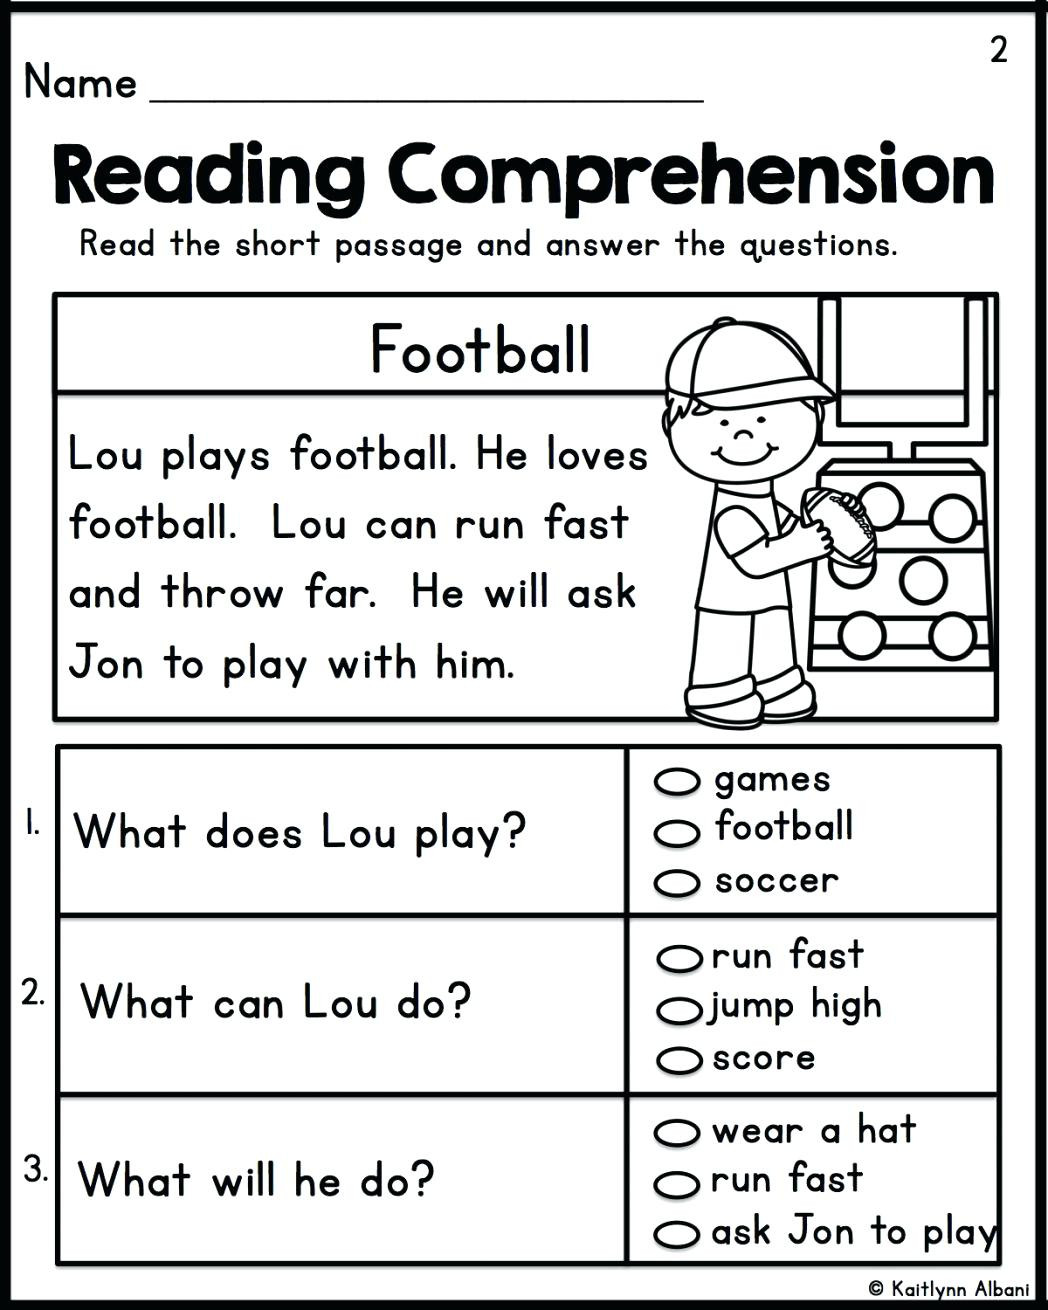 Compare and Contrast Reading Worksheets Math Worksheet 1st Grade Freerksheetsrksheet Reading to